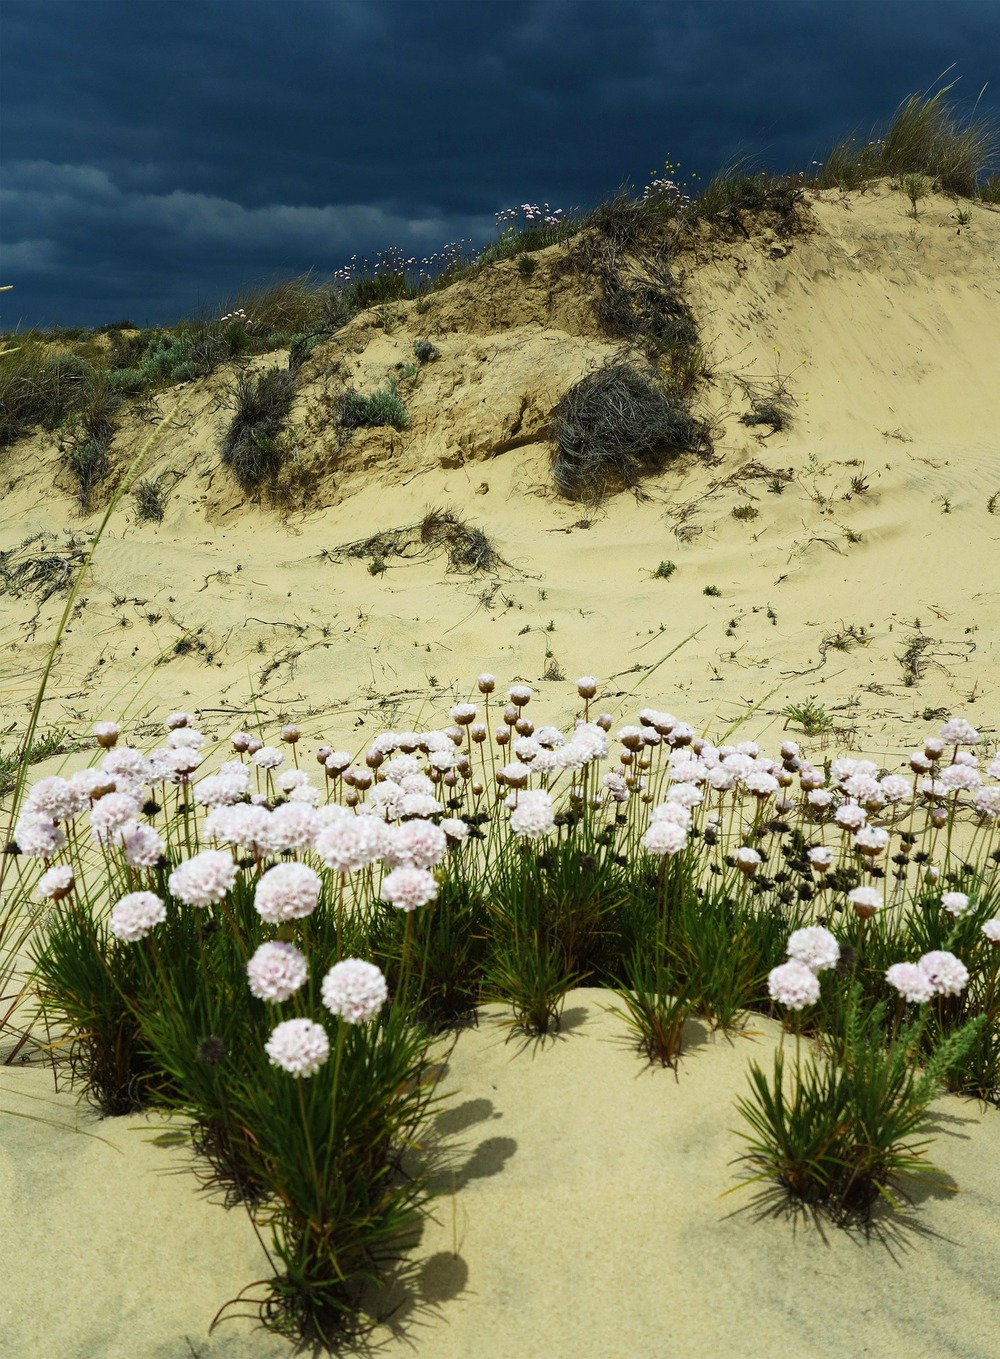 Wild flowers on the sand dunes of Doñana National Park